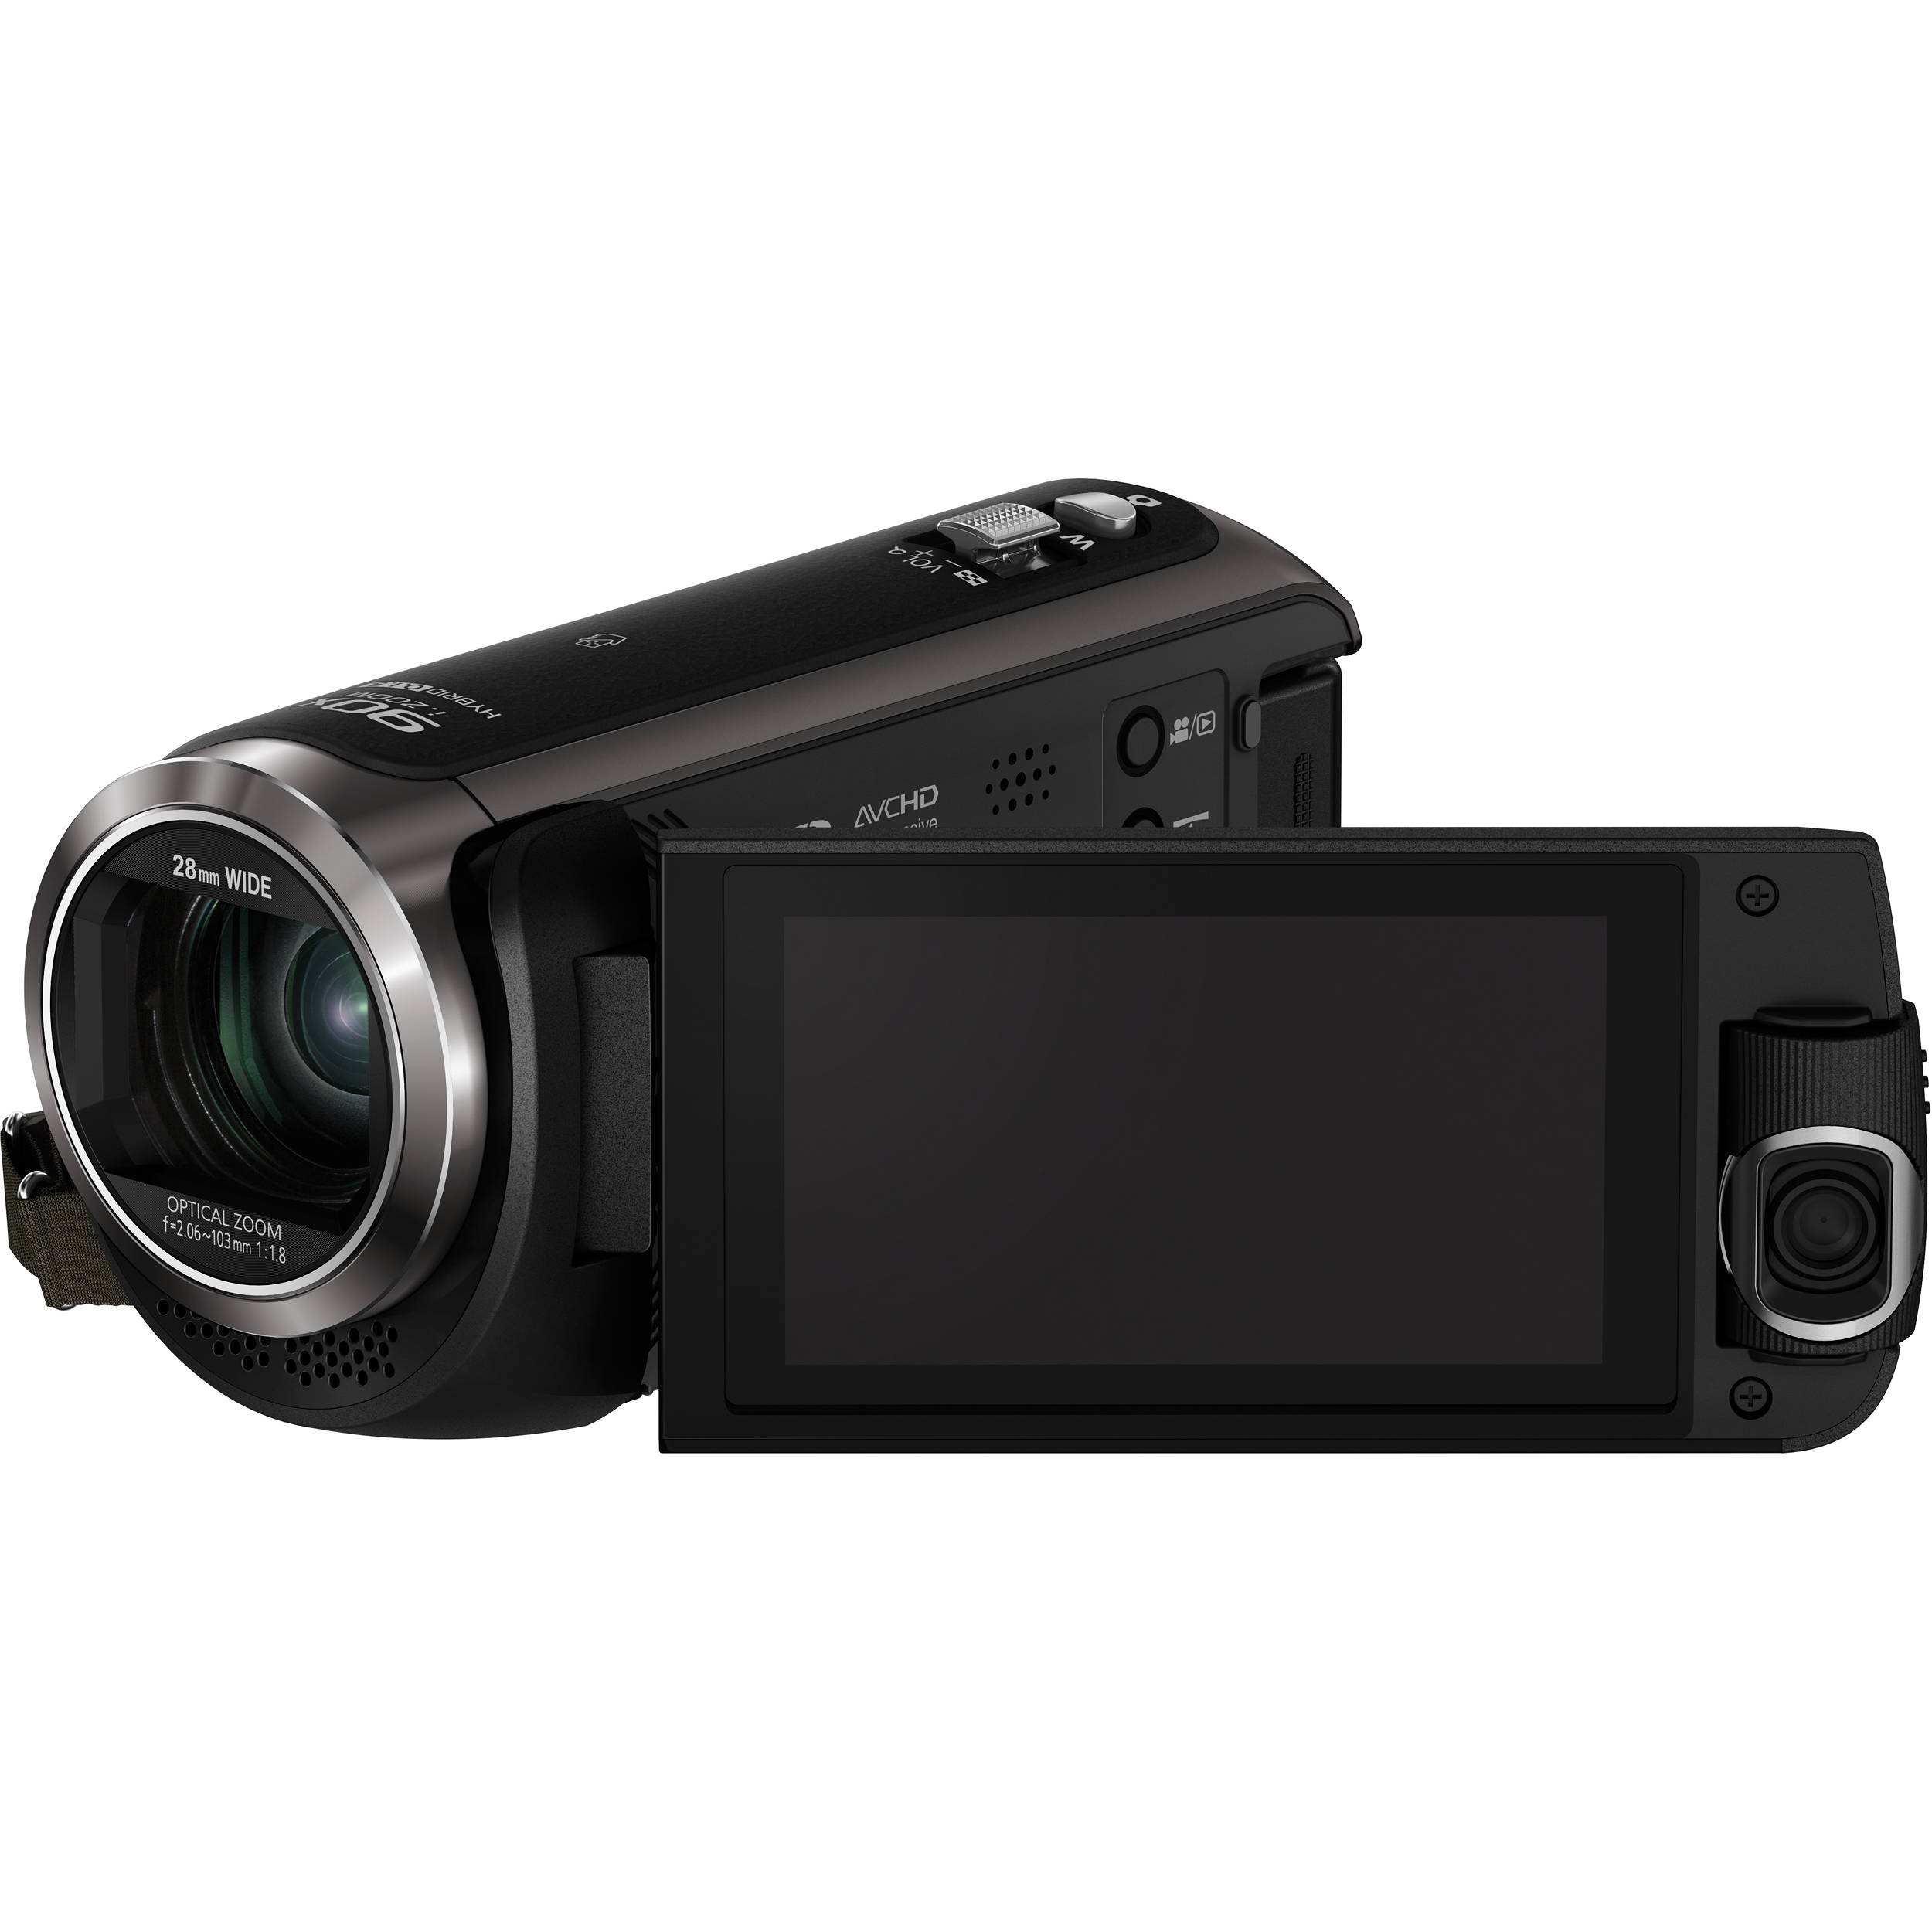 camera video hc-w570ep-k,filmare full hd,filmare dubla,senzor mos bsi 1/5.8 de 2.5mpx, panasonic